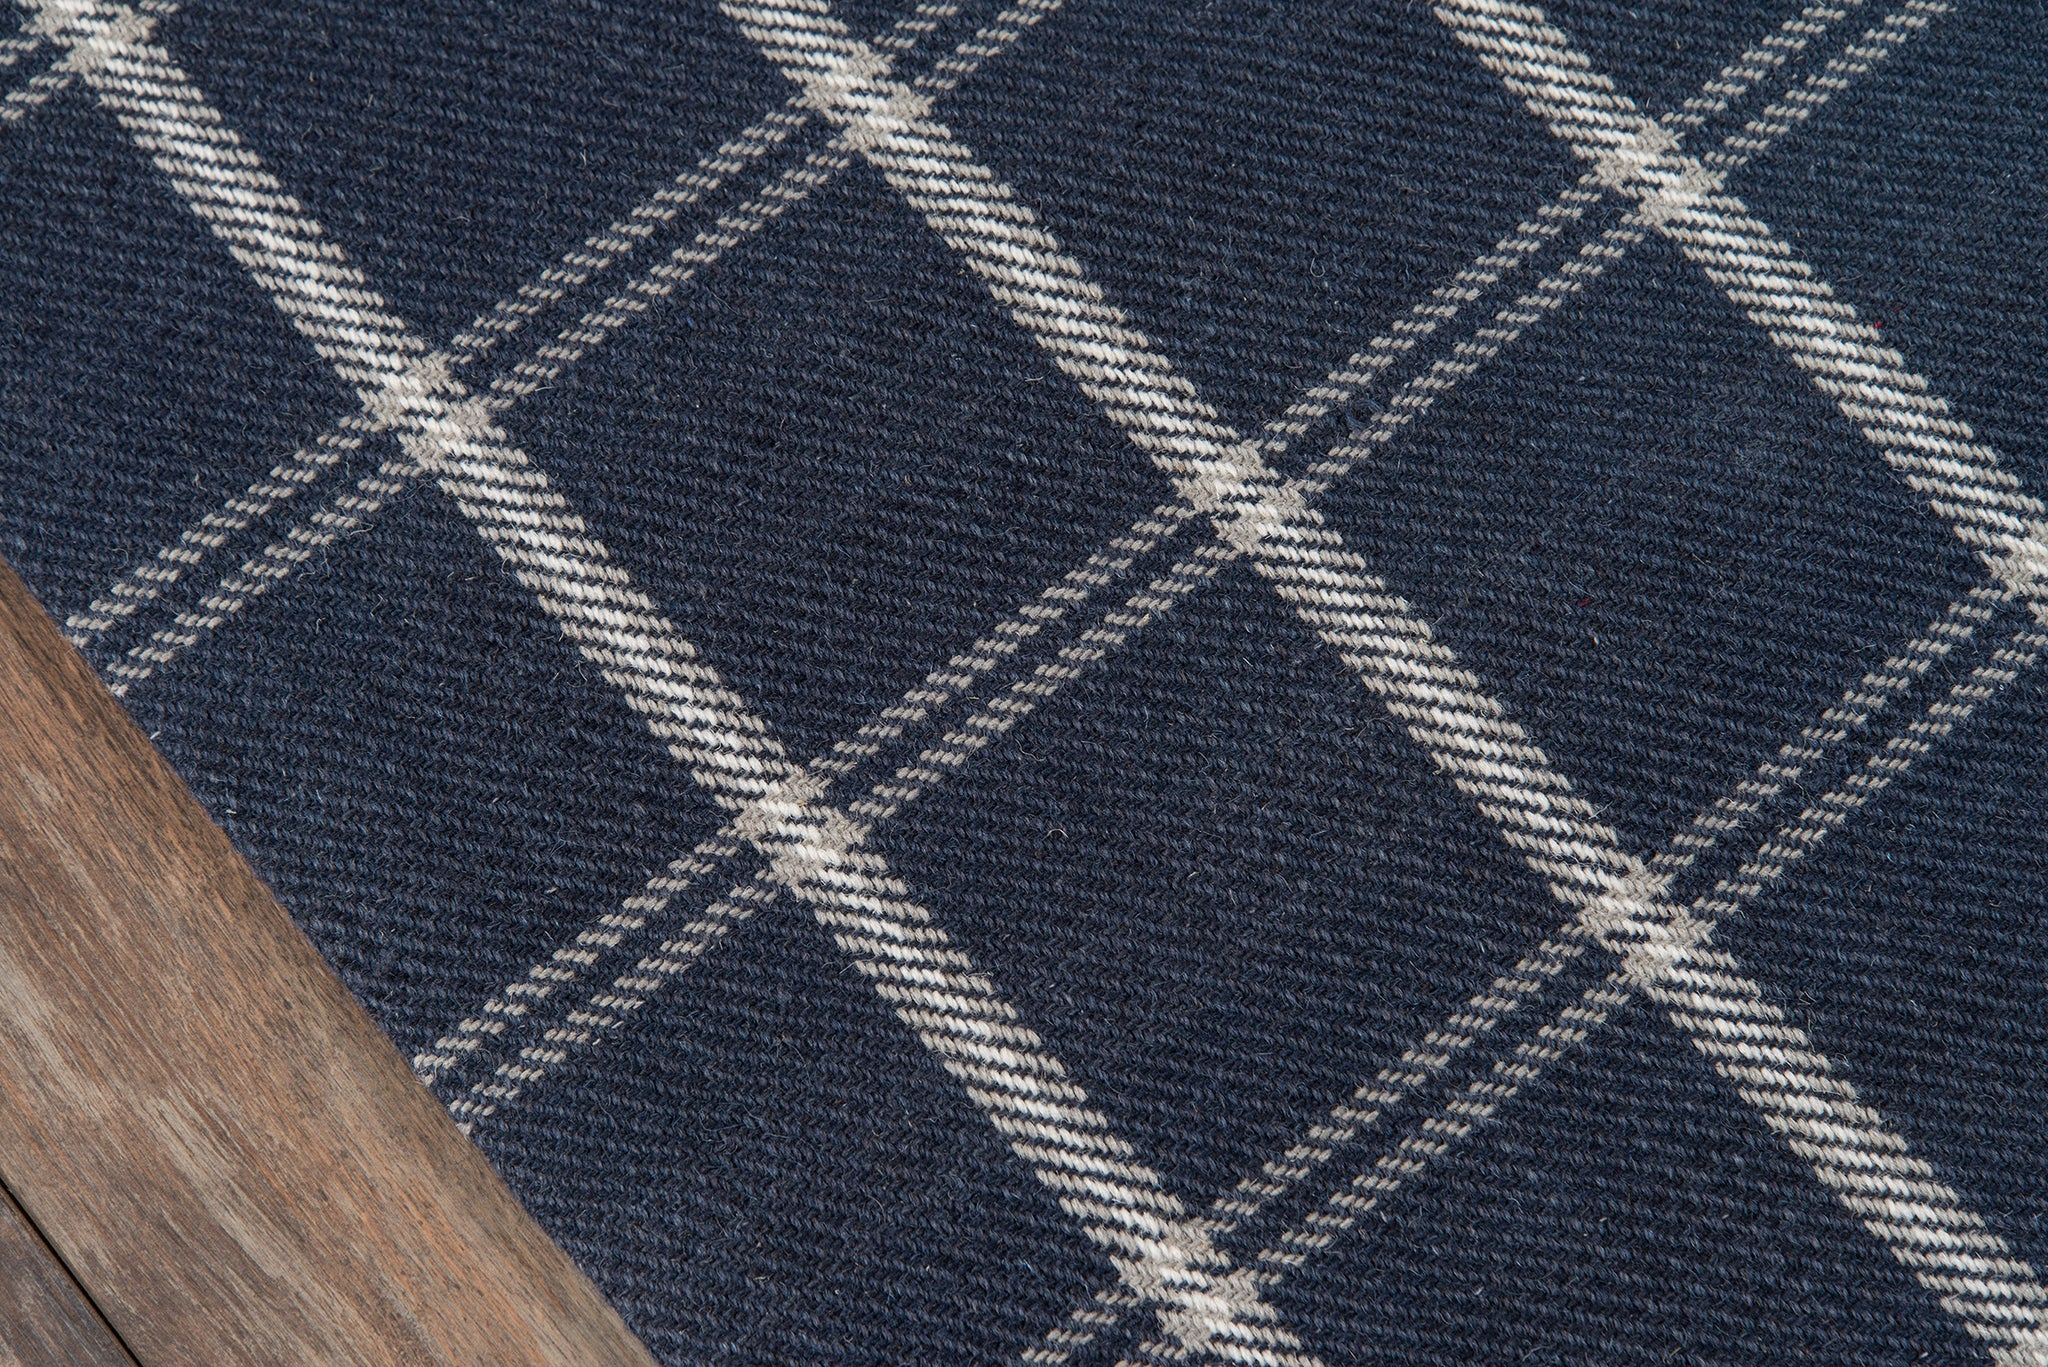 Navy Blue Plaid Tartan Wool Area Rug Erin Gates